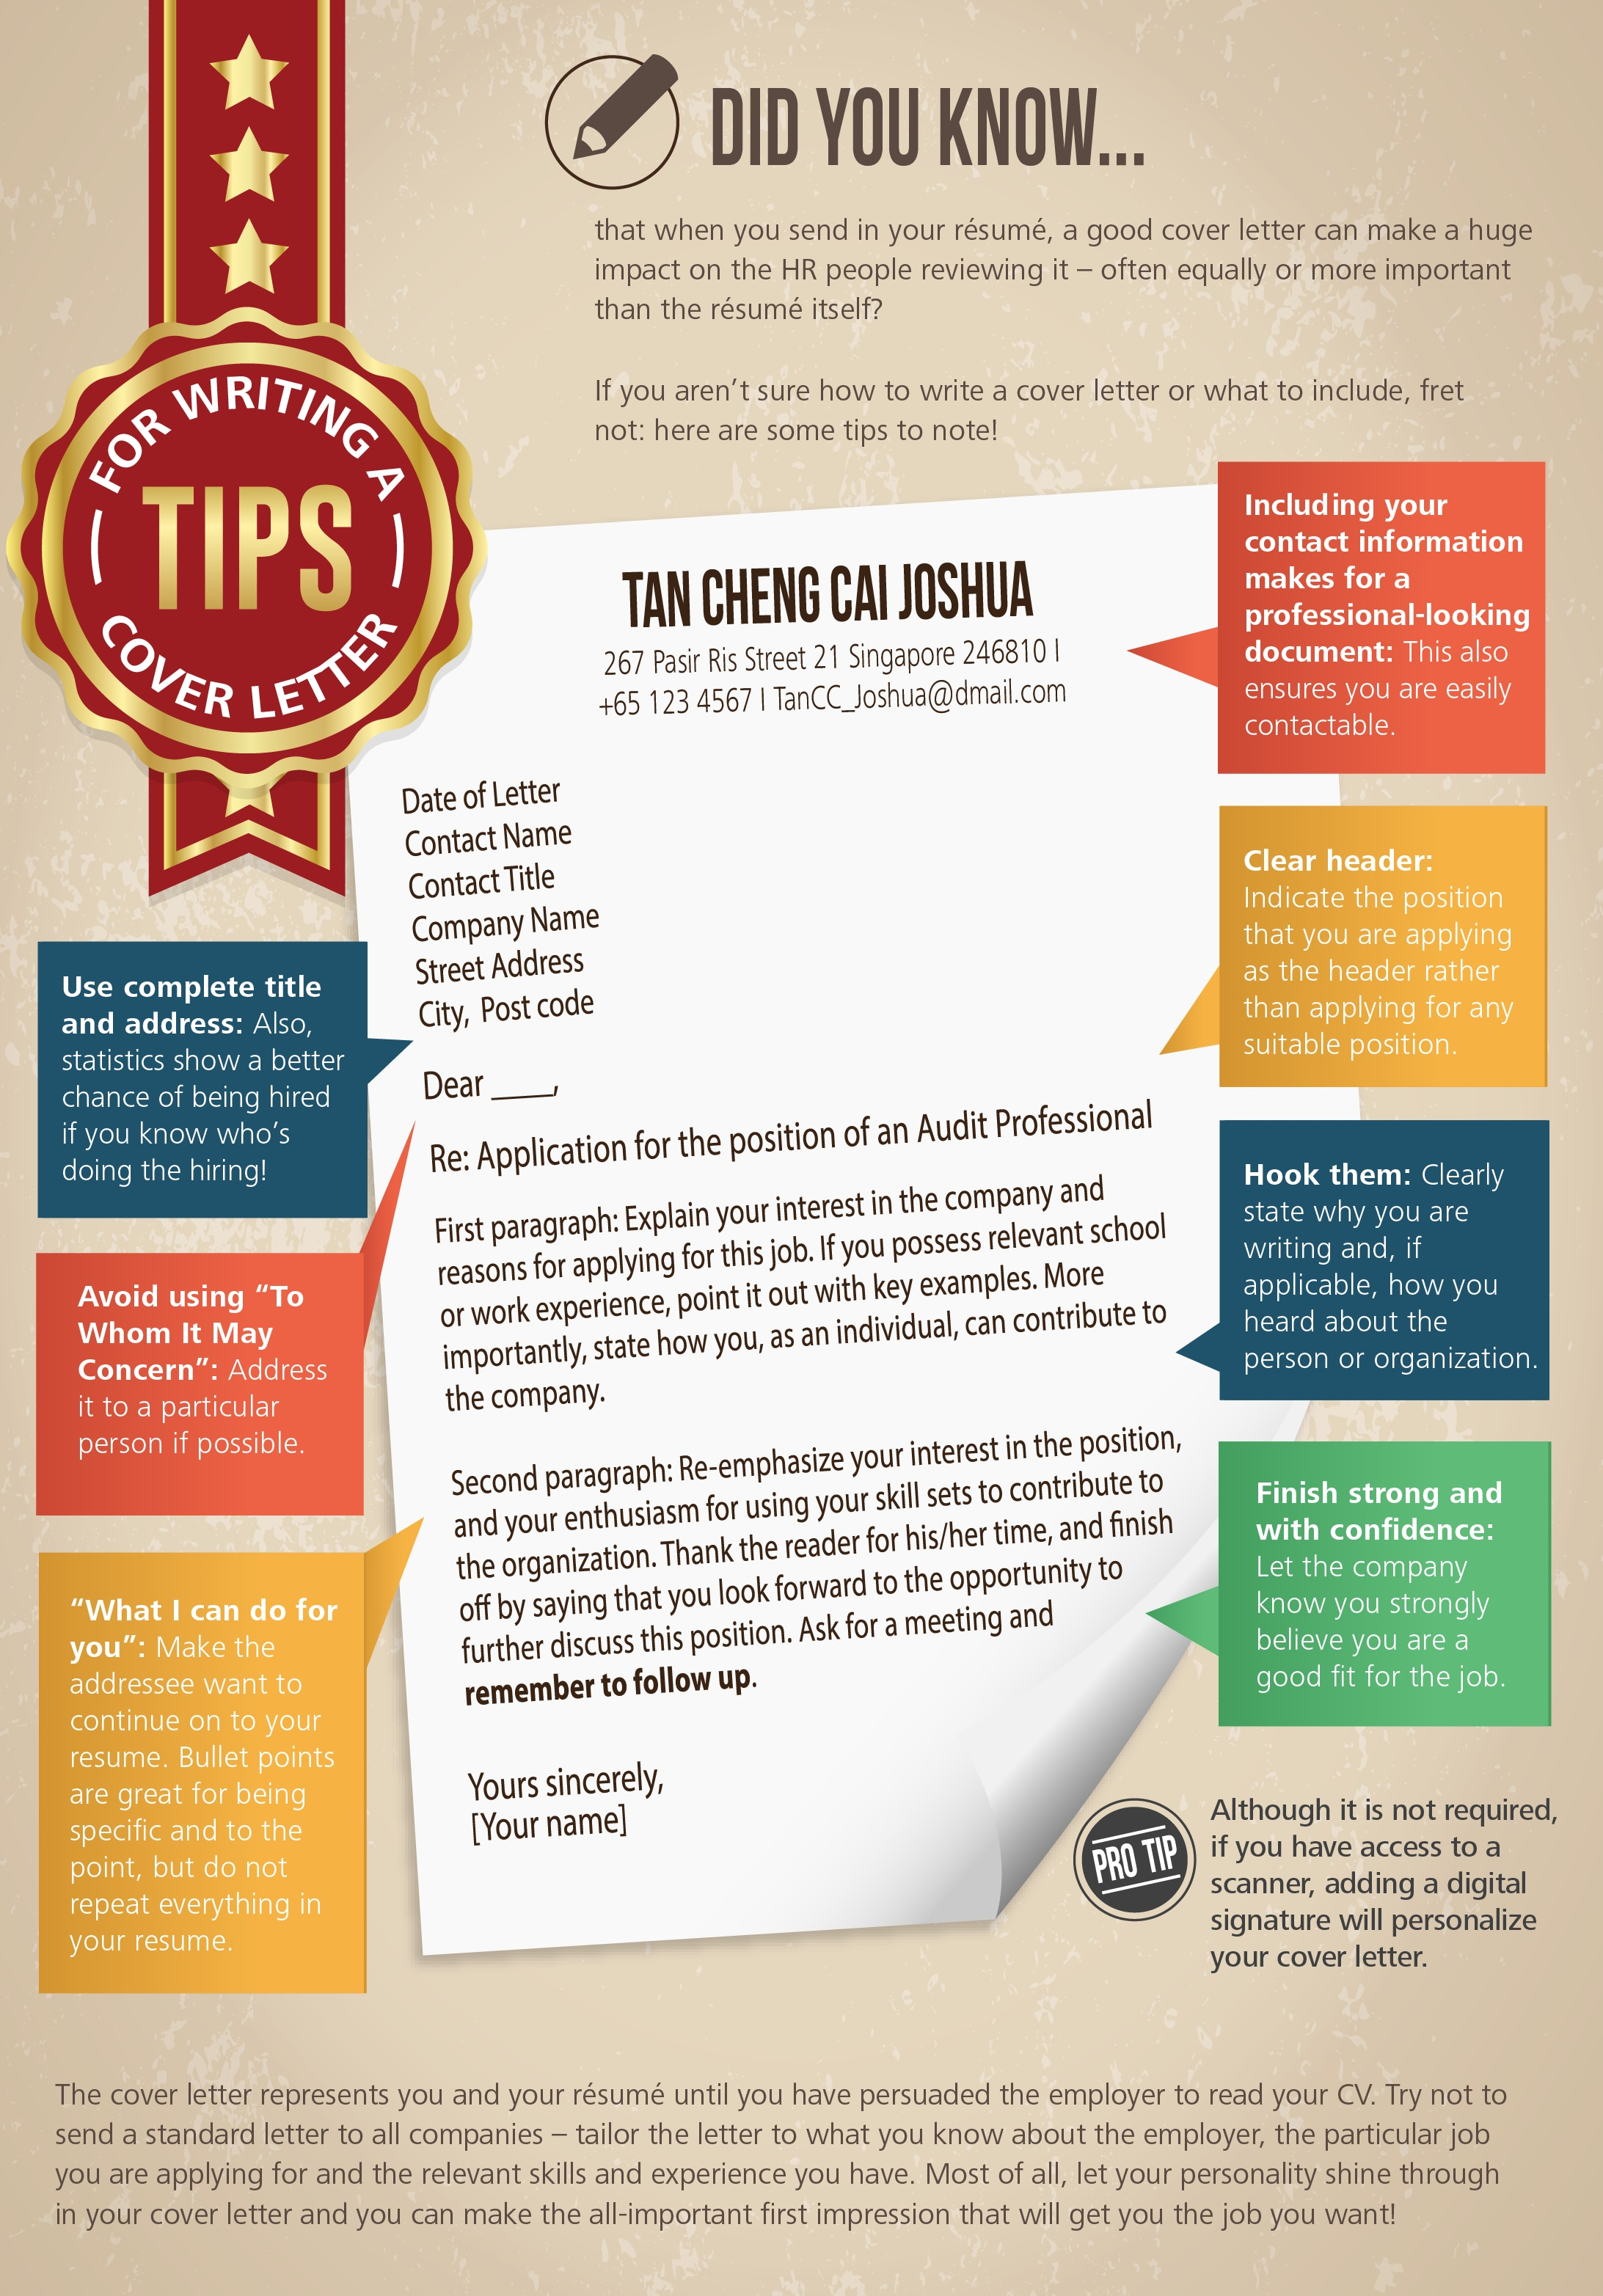 Tips for writing a cover letter deloitte singapore careers tips for writing a cover letter madrichimfo Images